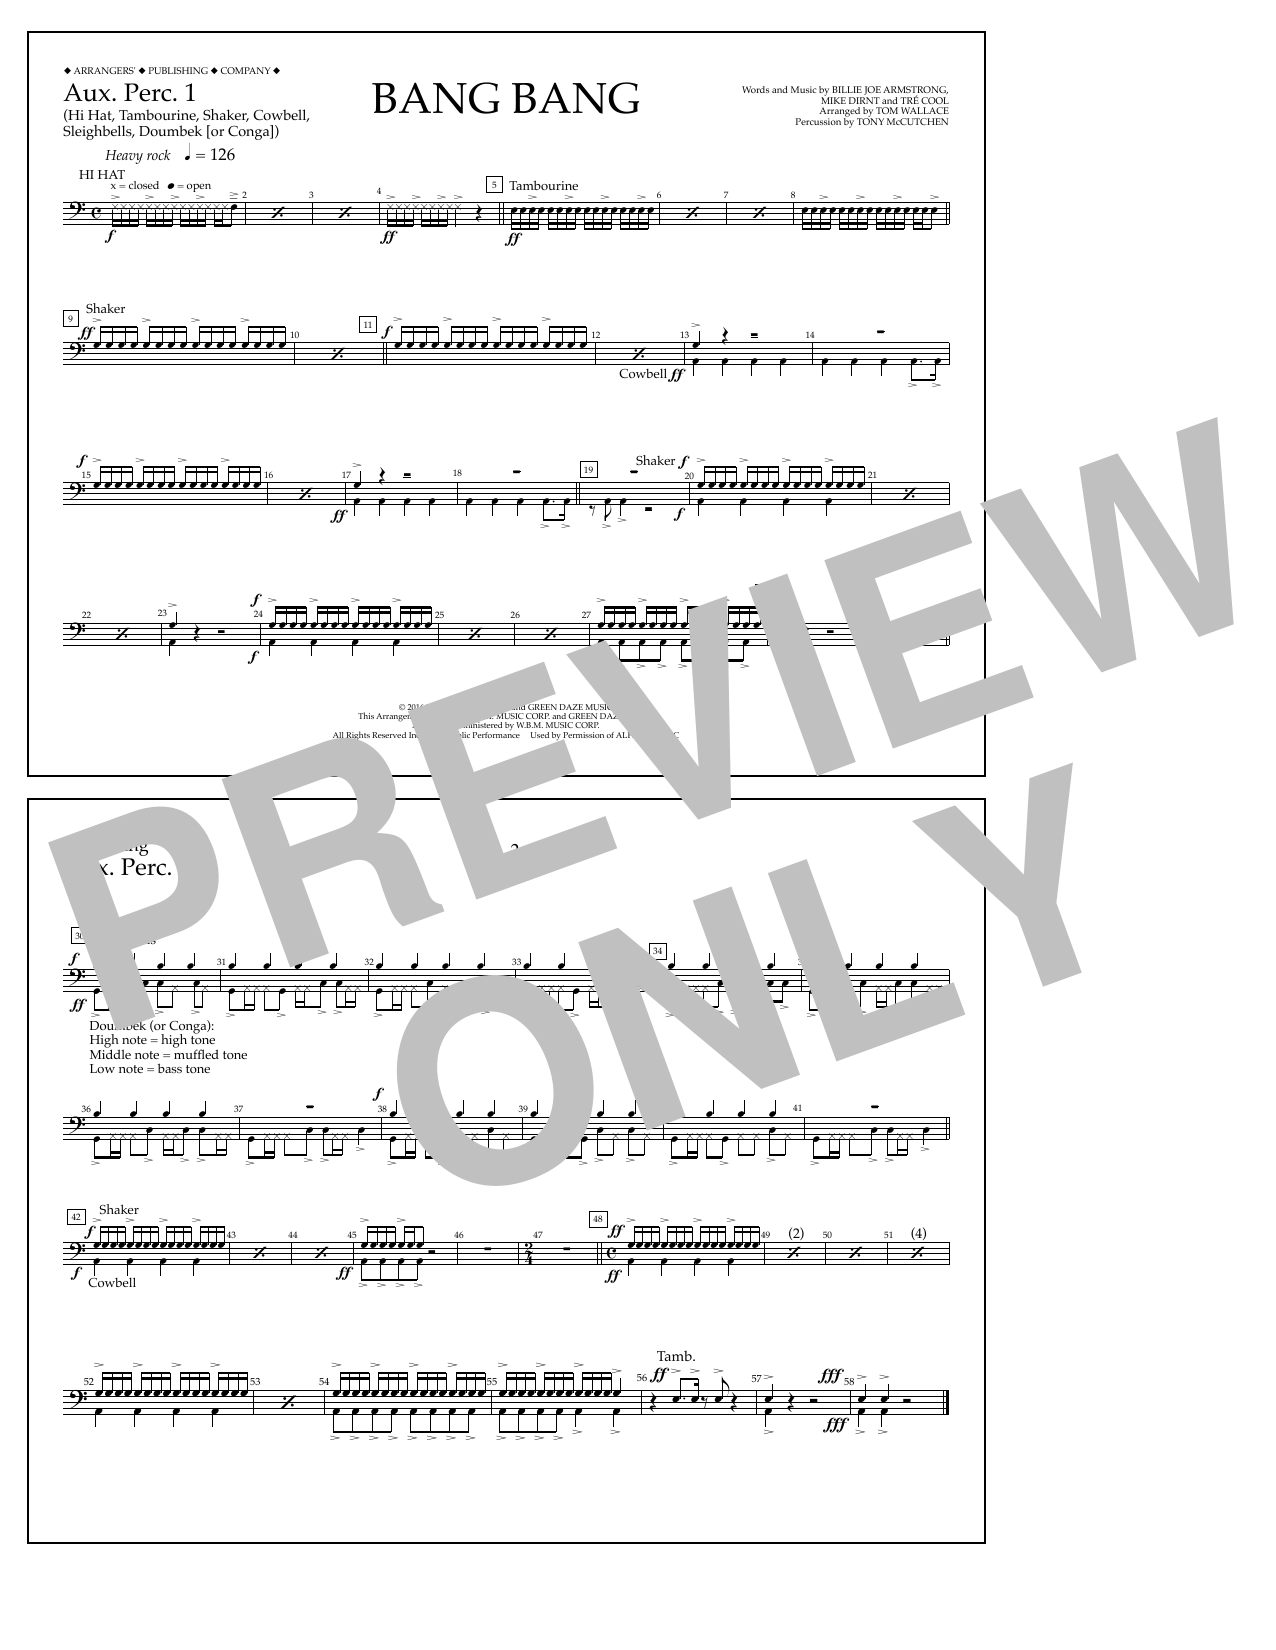 Bang Bang - Aux. Perc. 1 Sheet Music